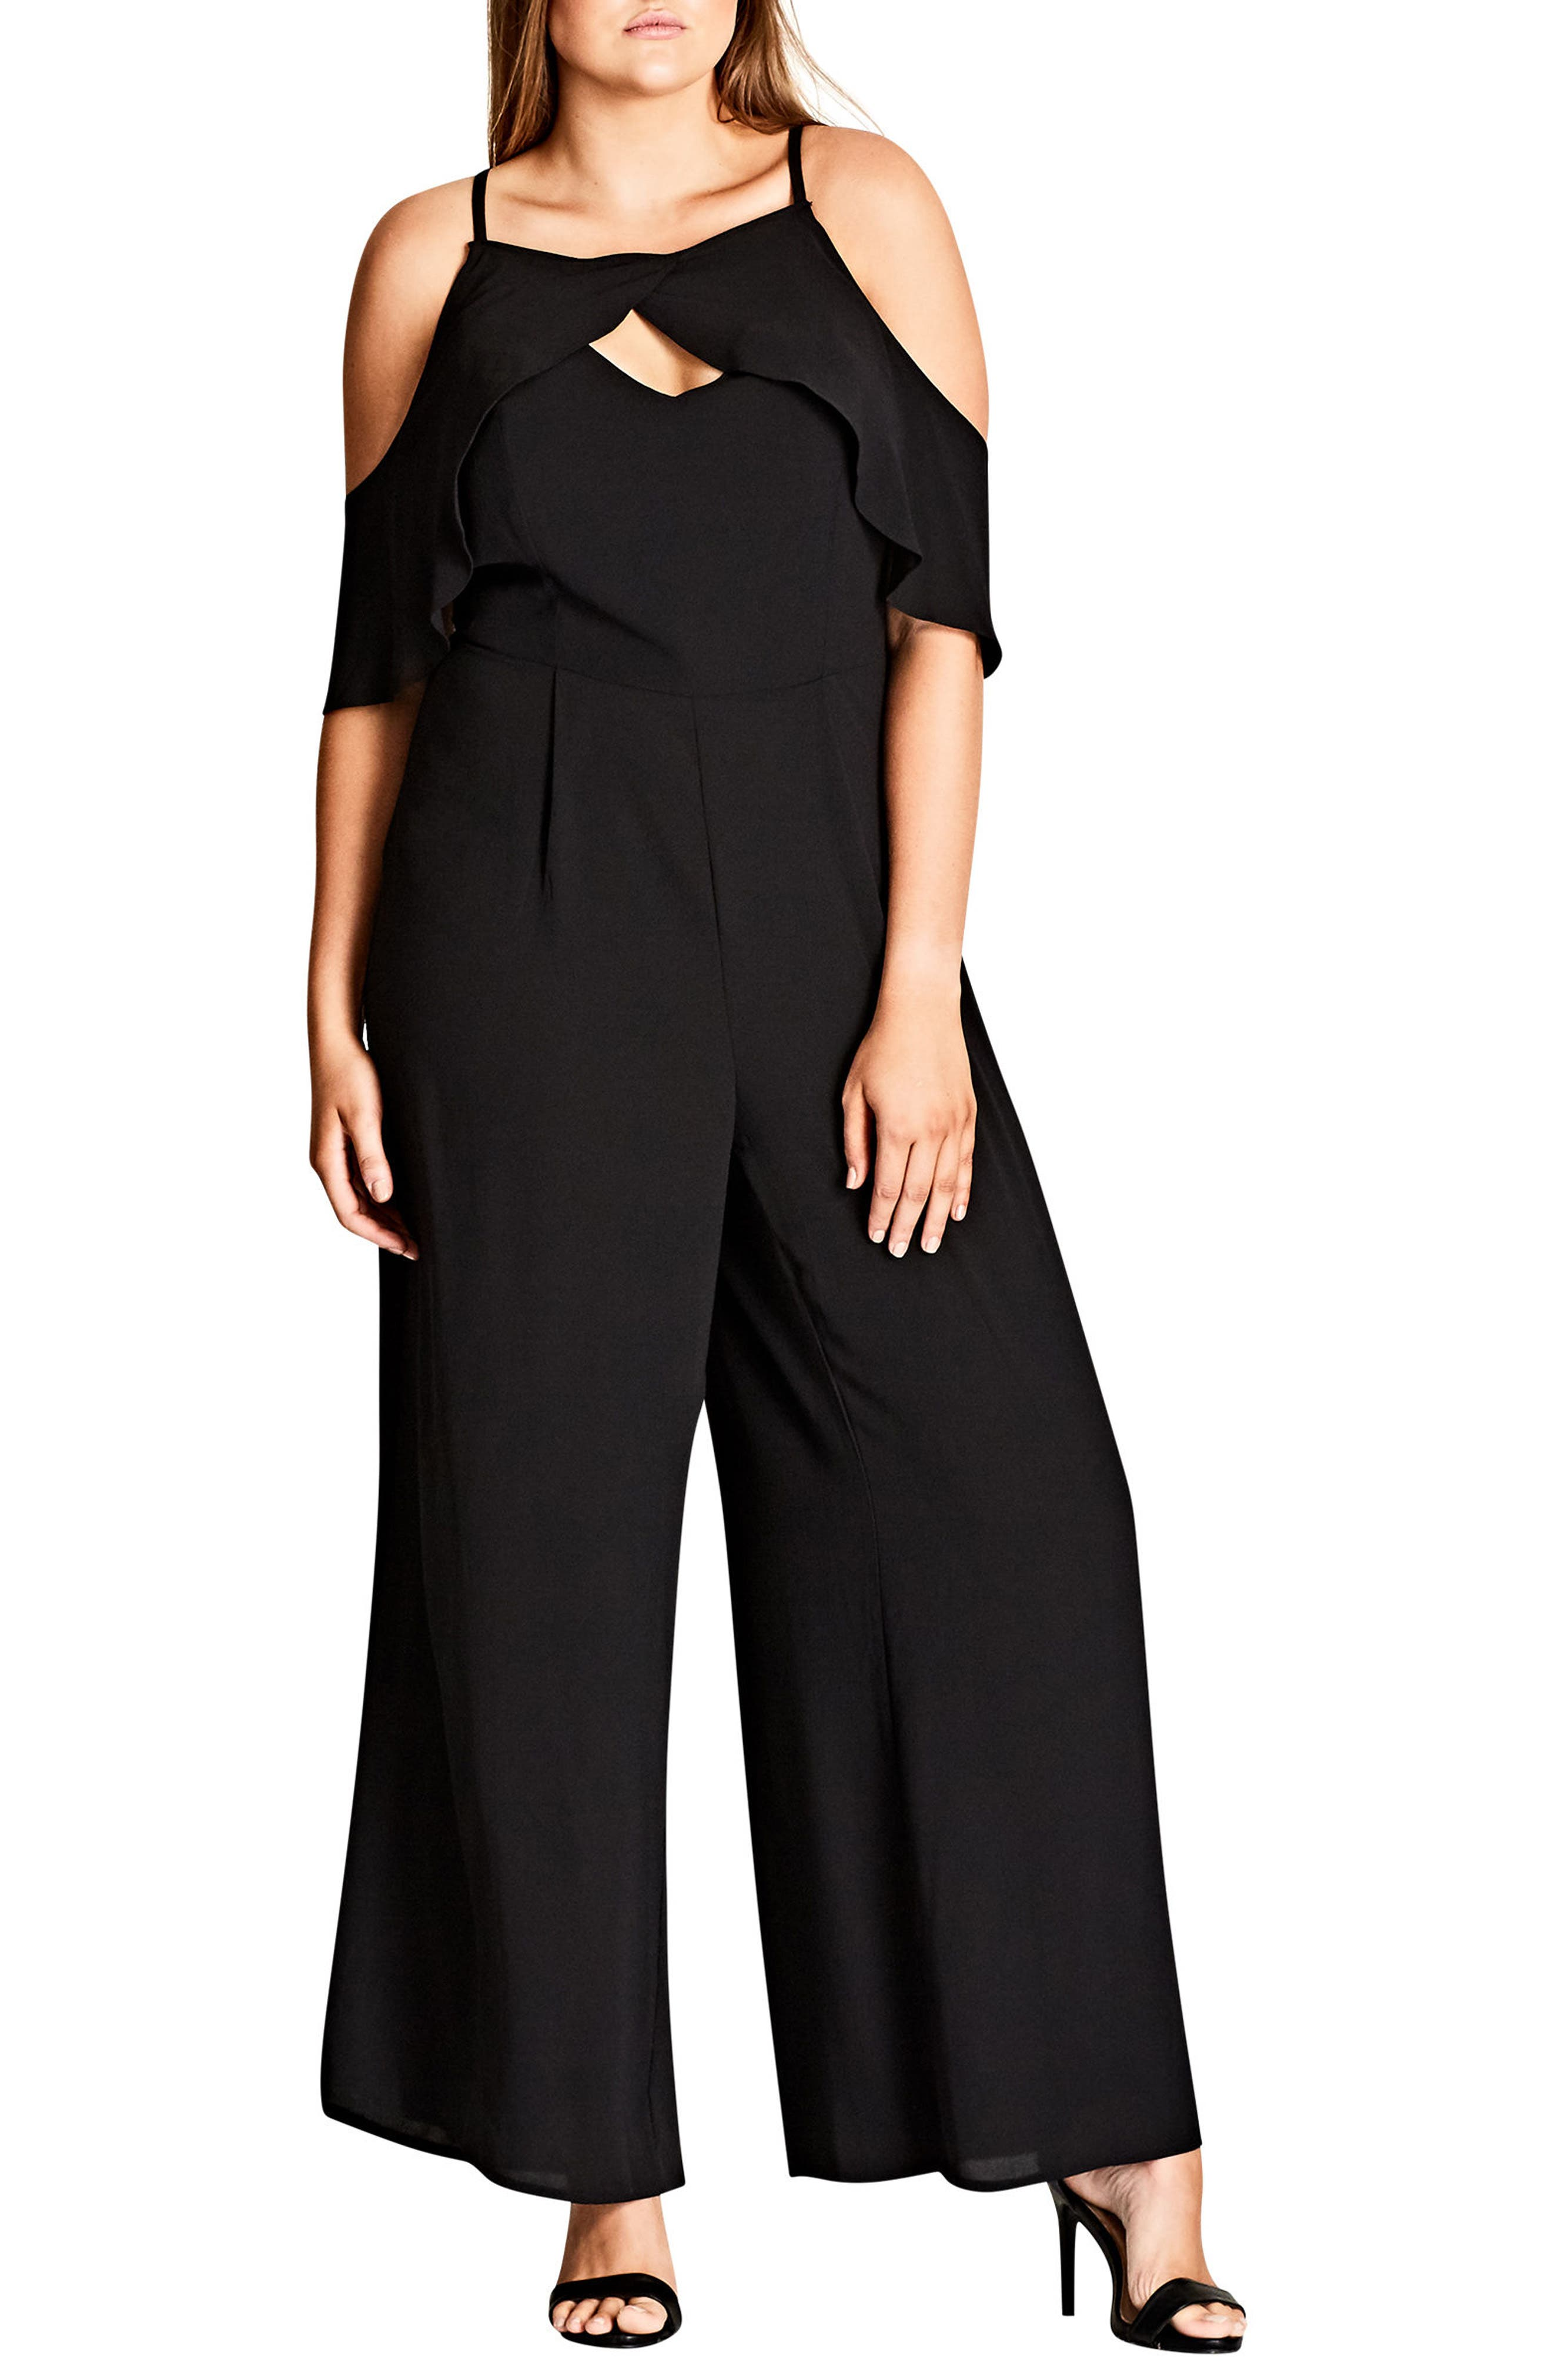 Serenity Cold Shoulder Jumpsuit,                         Main,                         color, Black